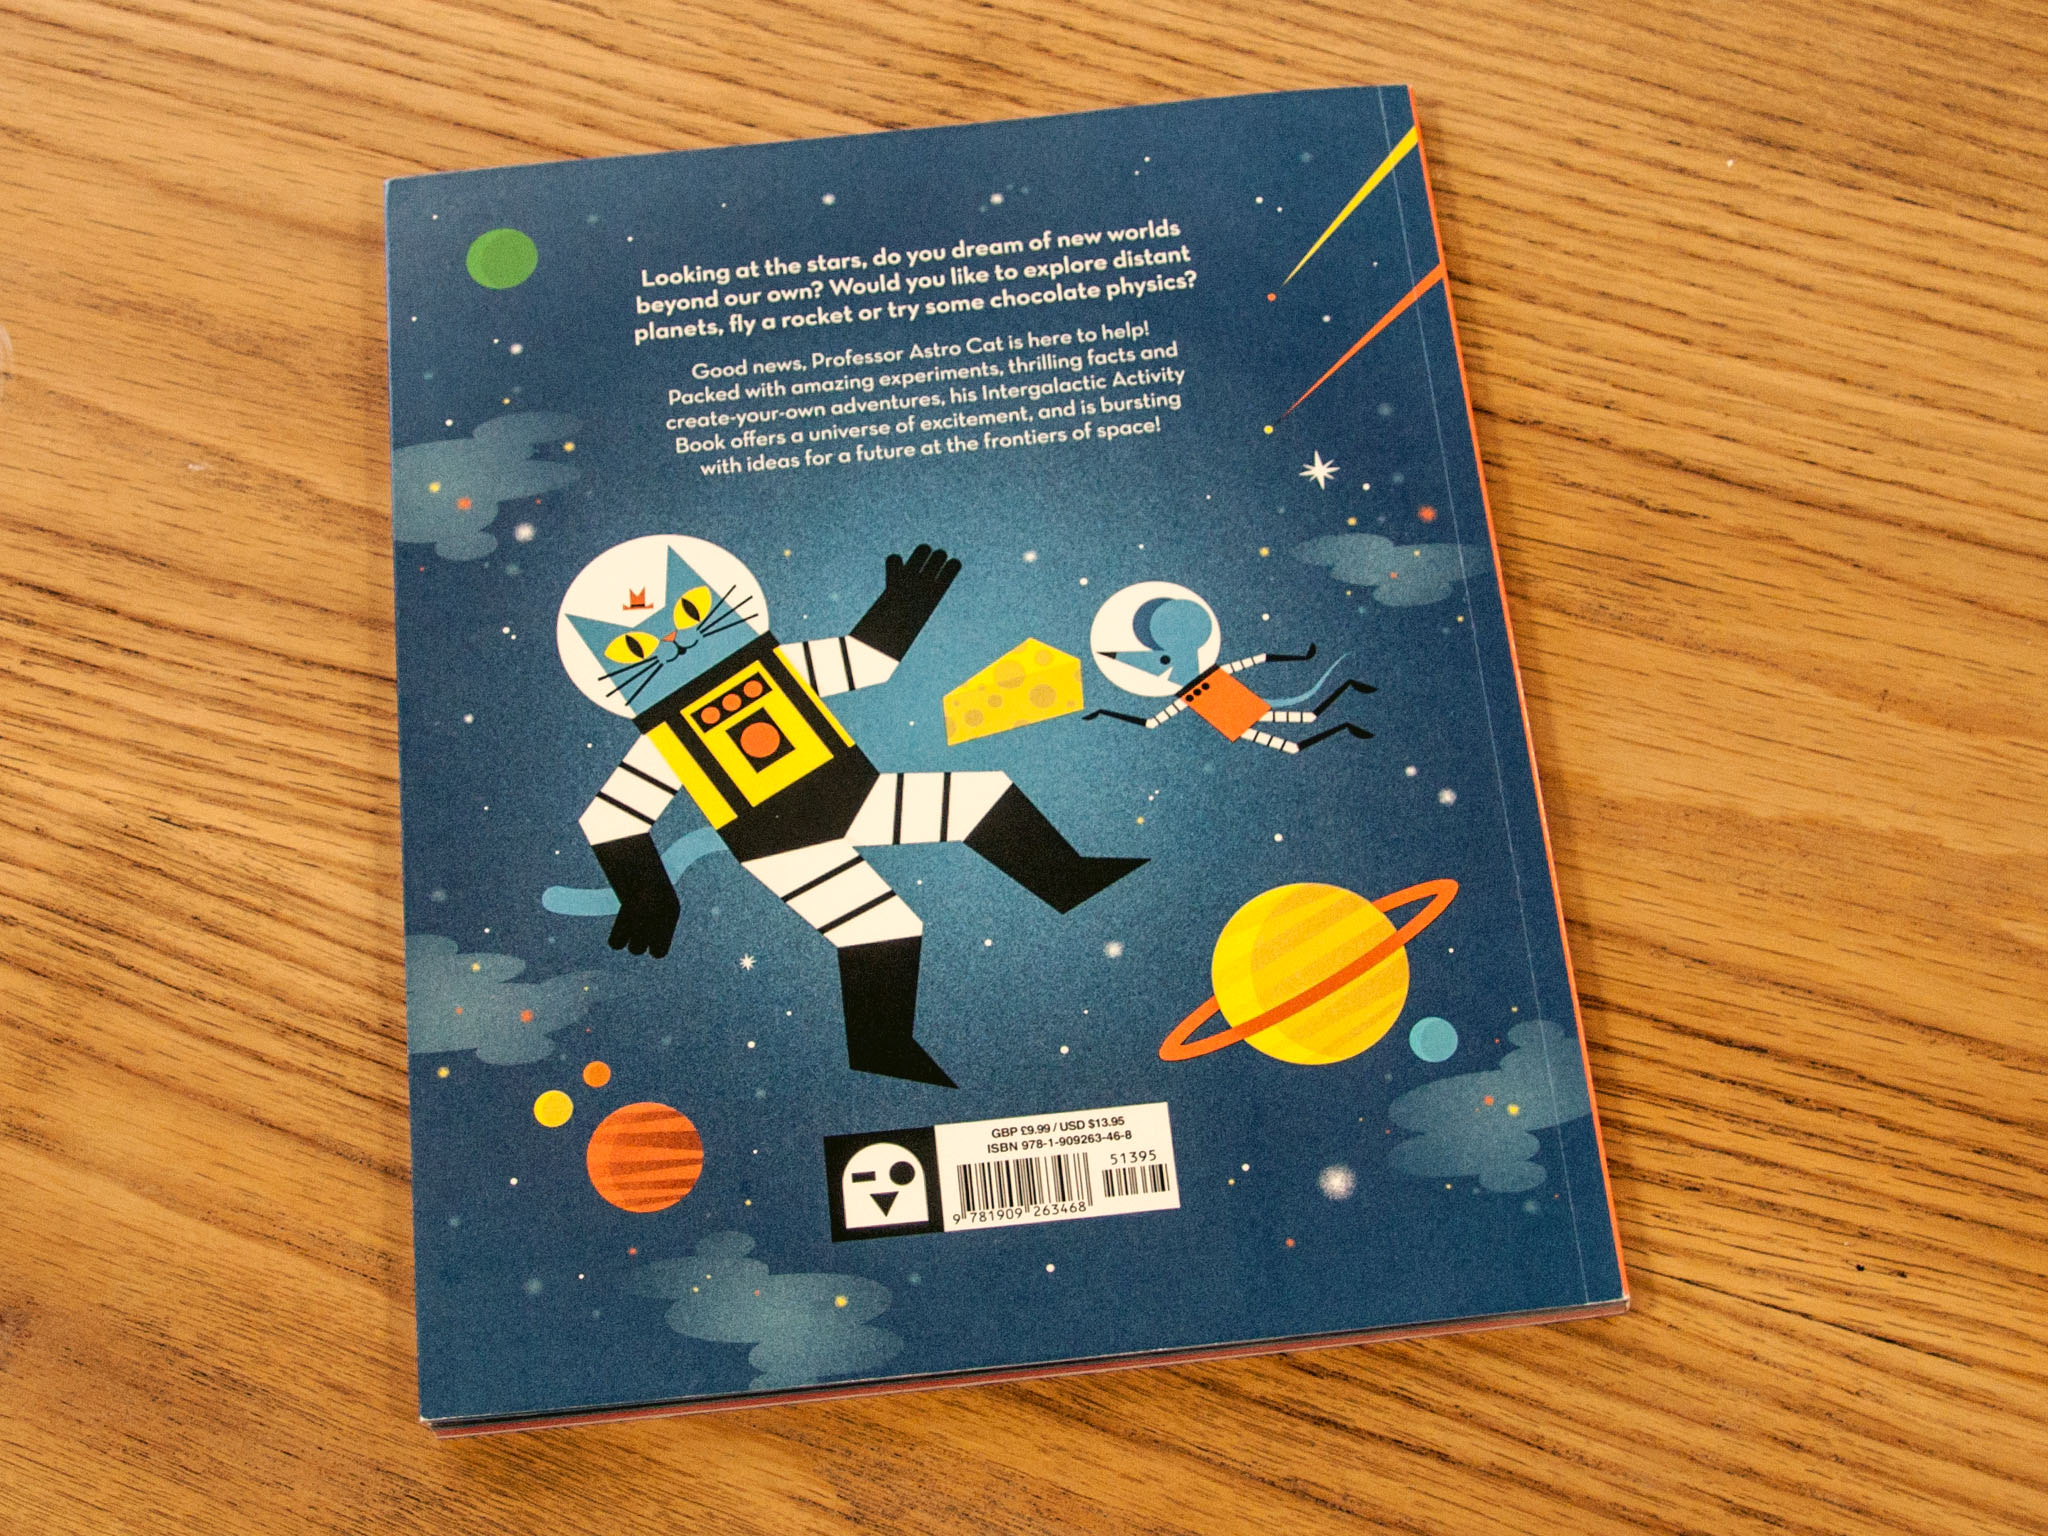 astrocat-activity-book-product-page-5